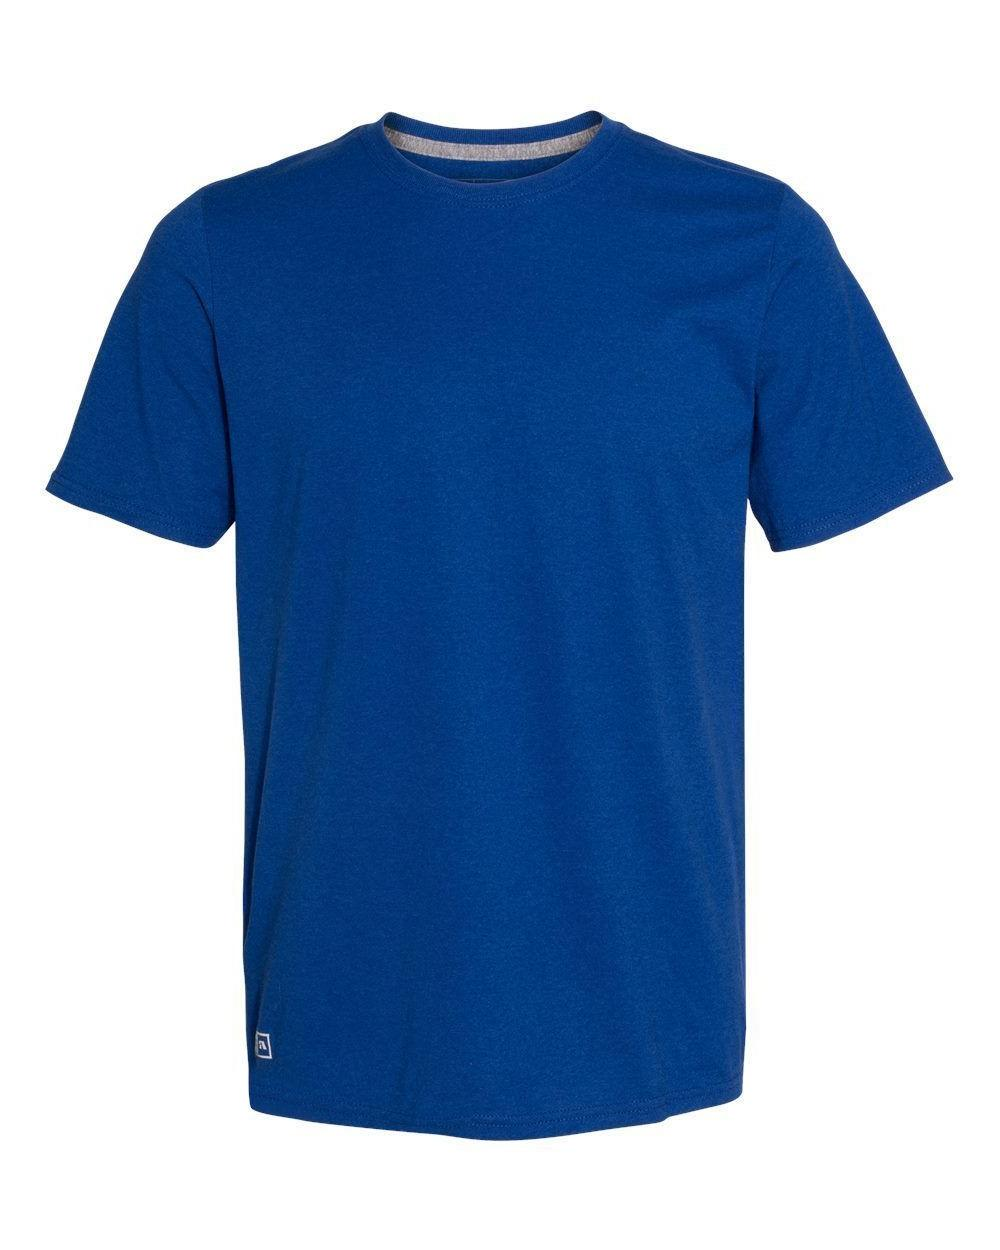 Russell Athletic Essential Blend Tee,